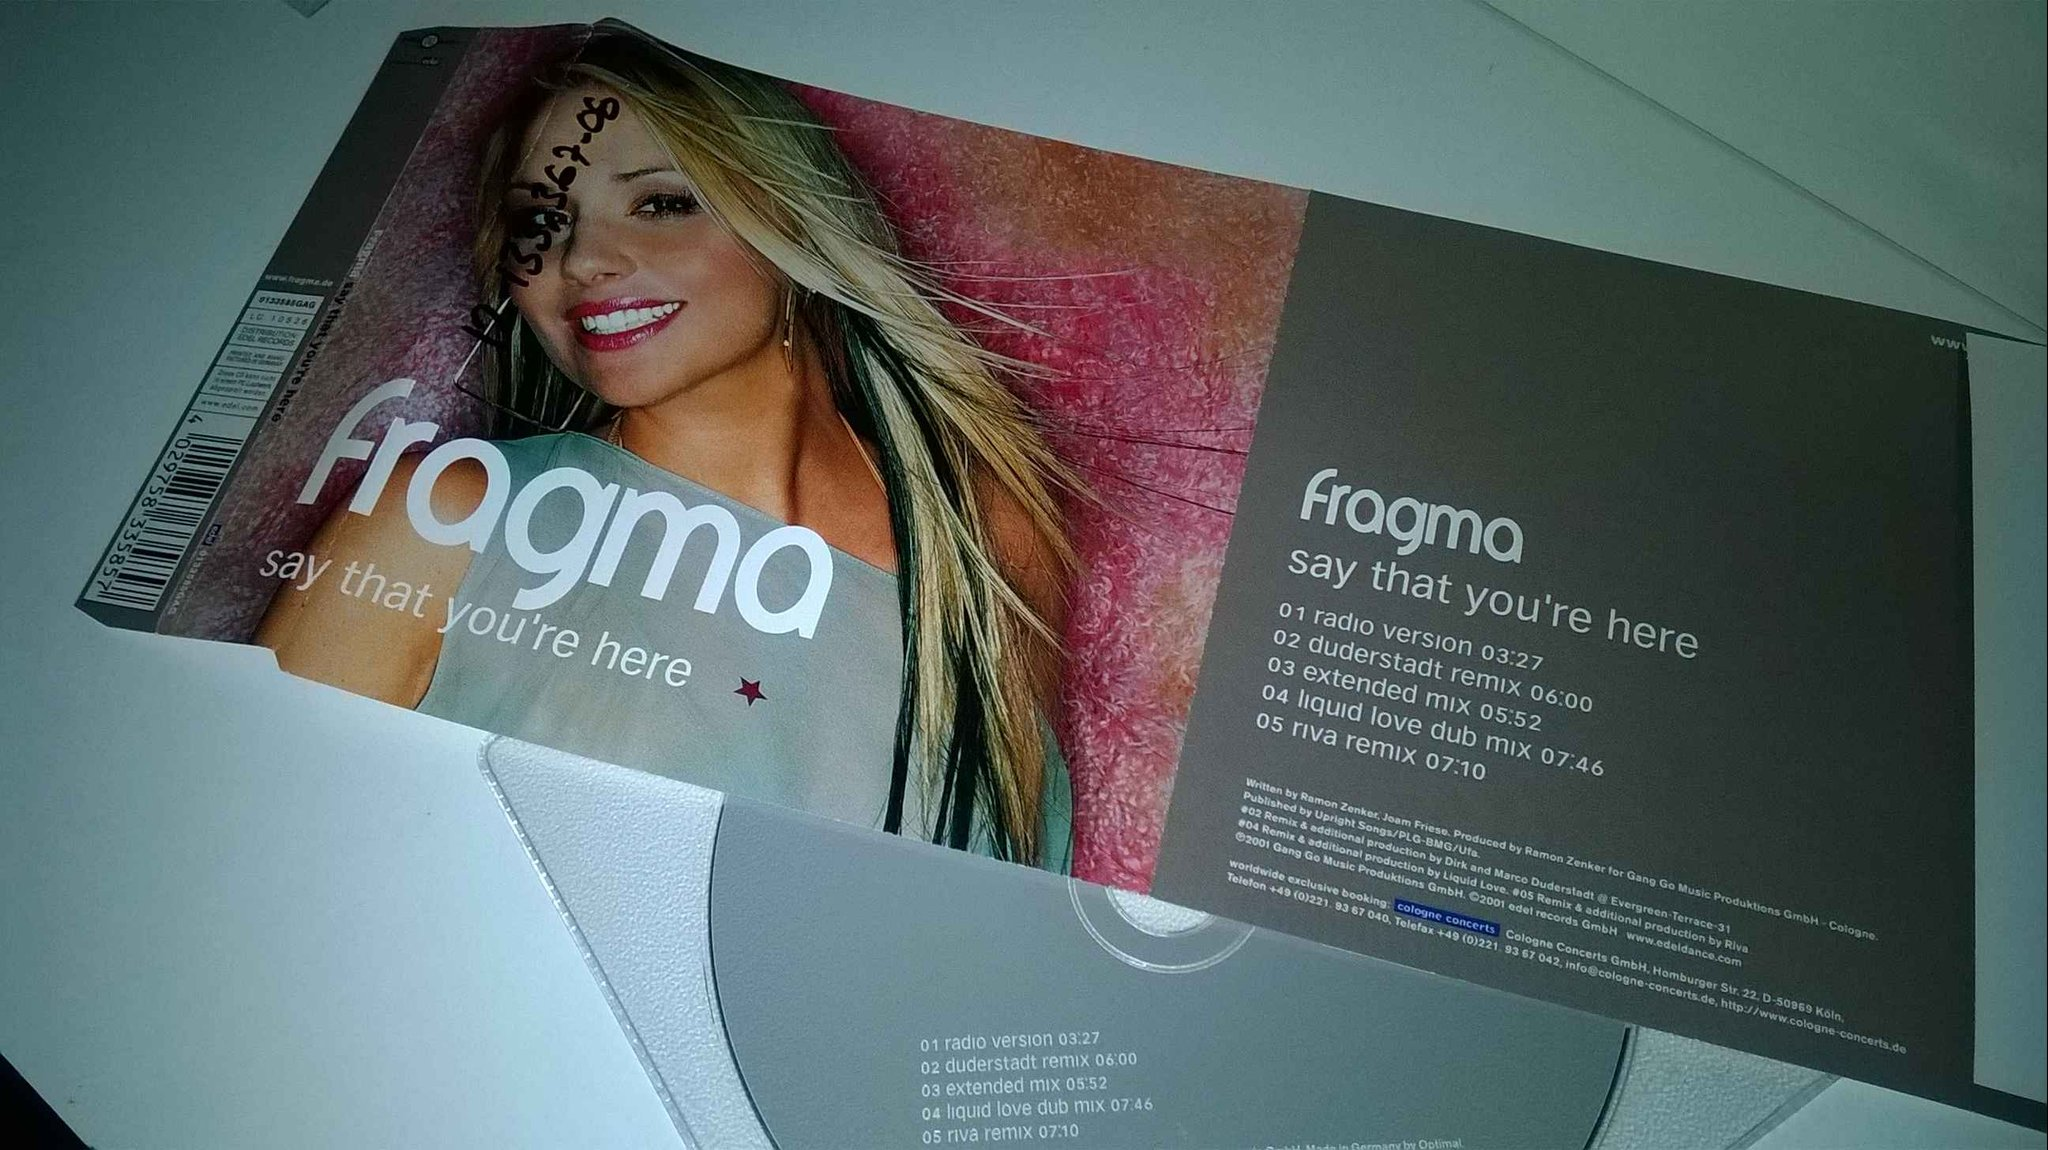 Fragma - Say that you're here, single CD